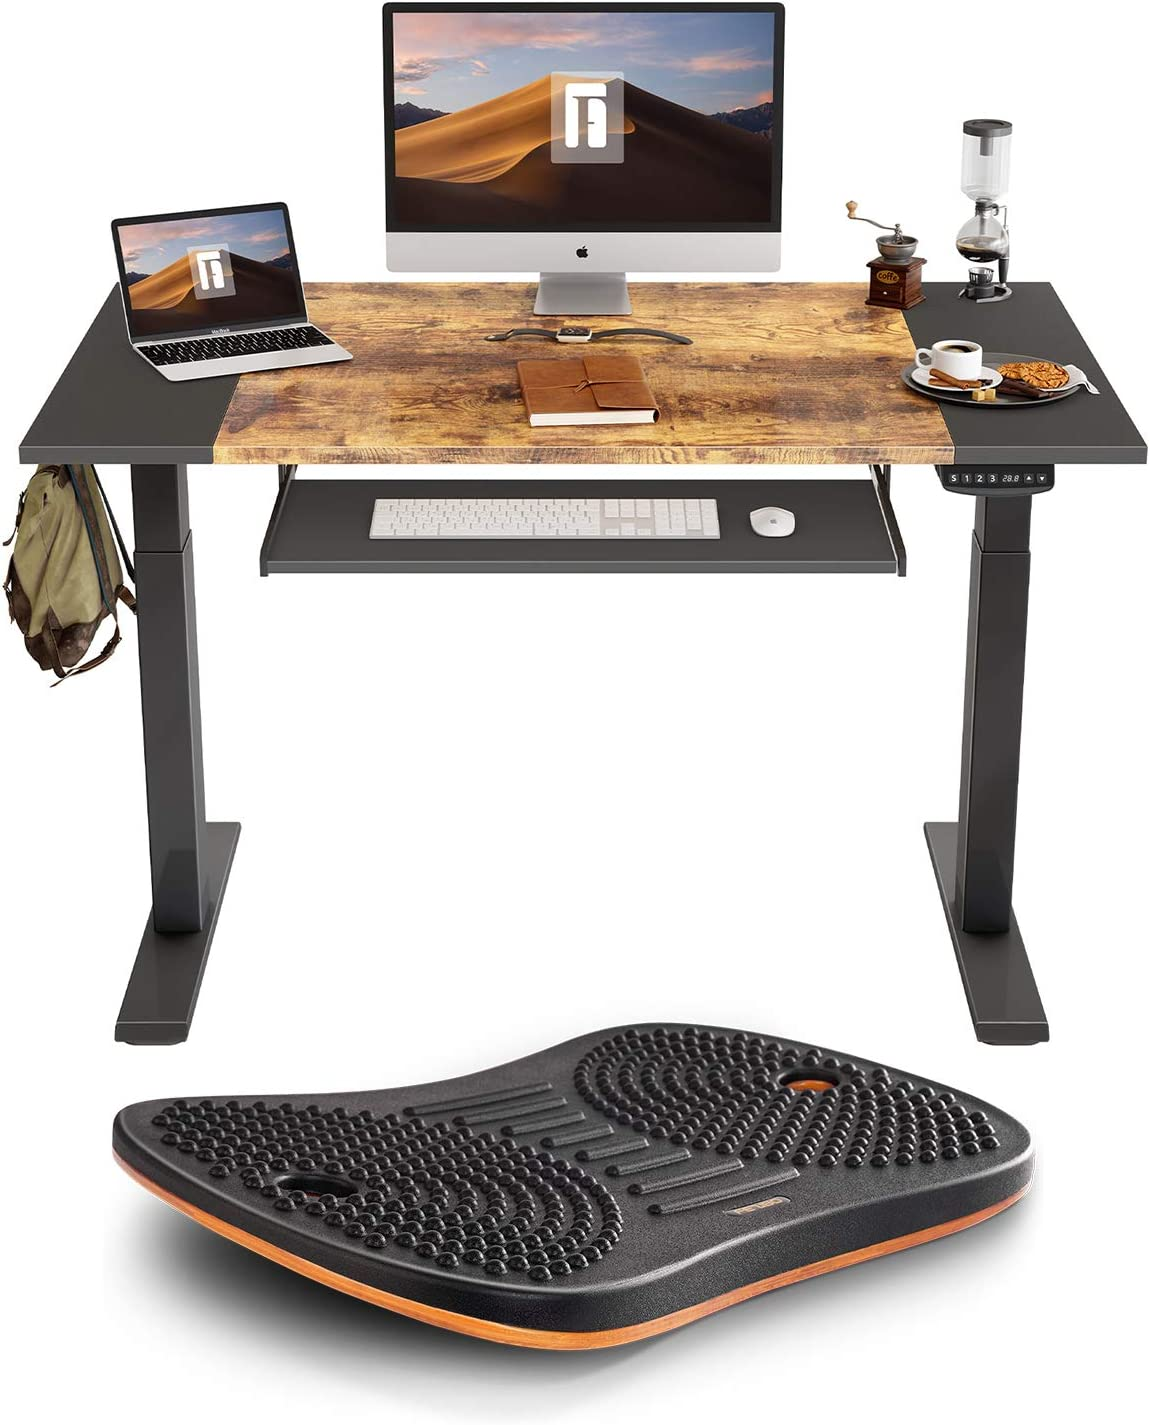 FEZIBO Dual Motor Standing Desk with Pull-Out Keyboard Tray, 48 x 24 inches Splice Board | Anti Fatigue Mat Wooden Wobble Balance Board (Medium, Obsidian Black)